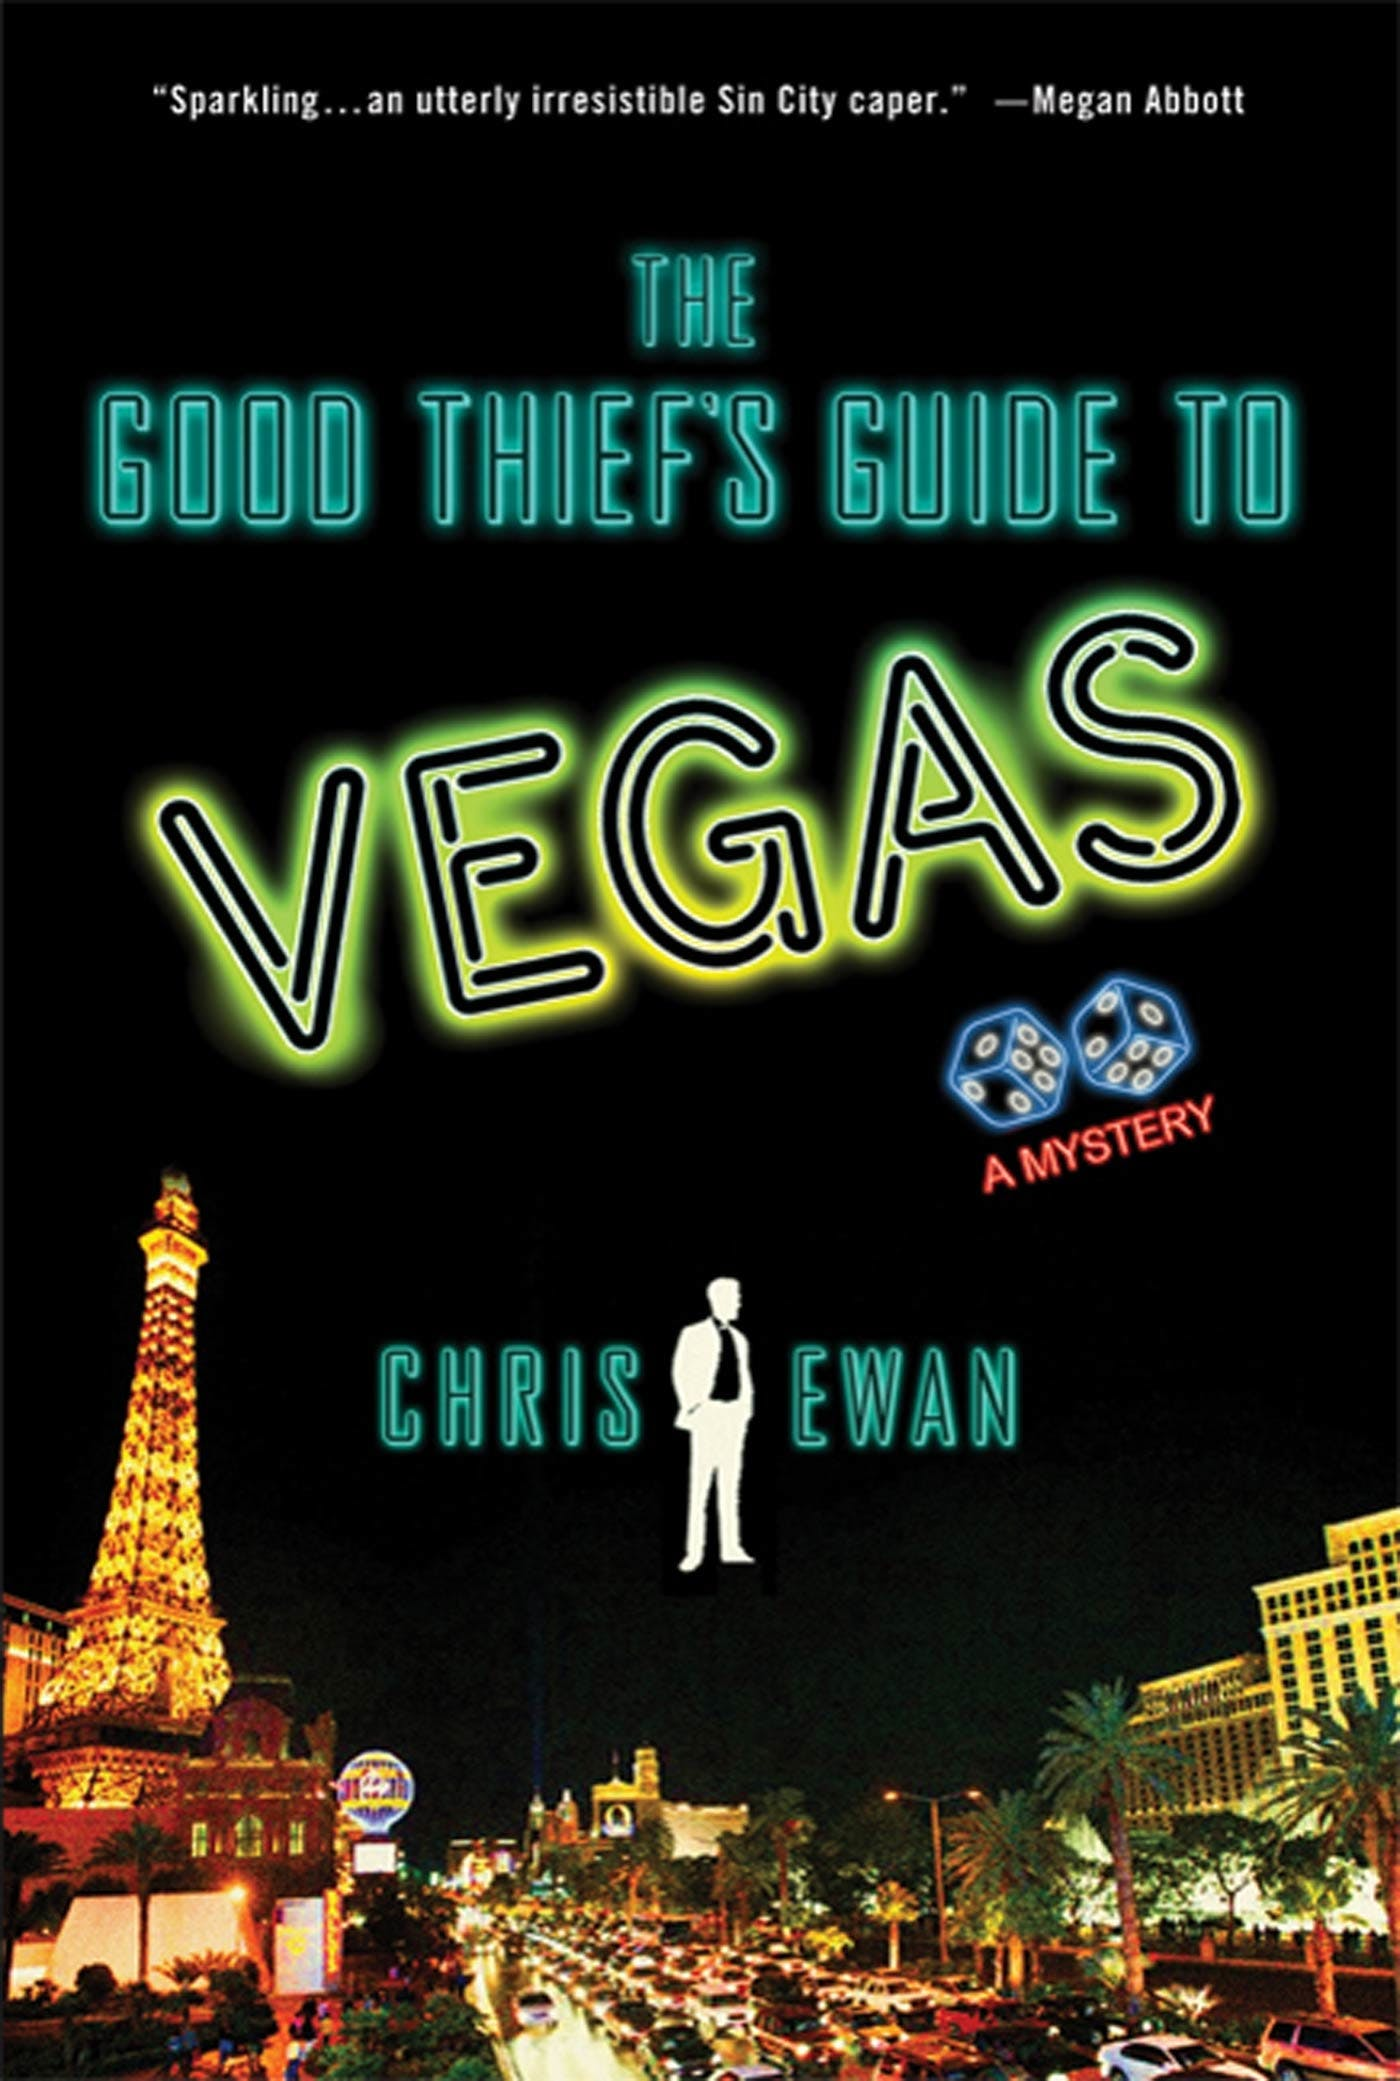 Image of The Good Thief's Guide to Vegas